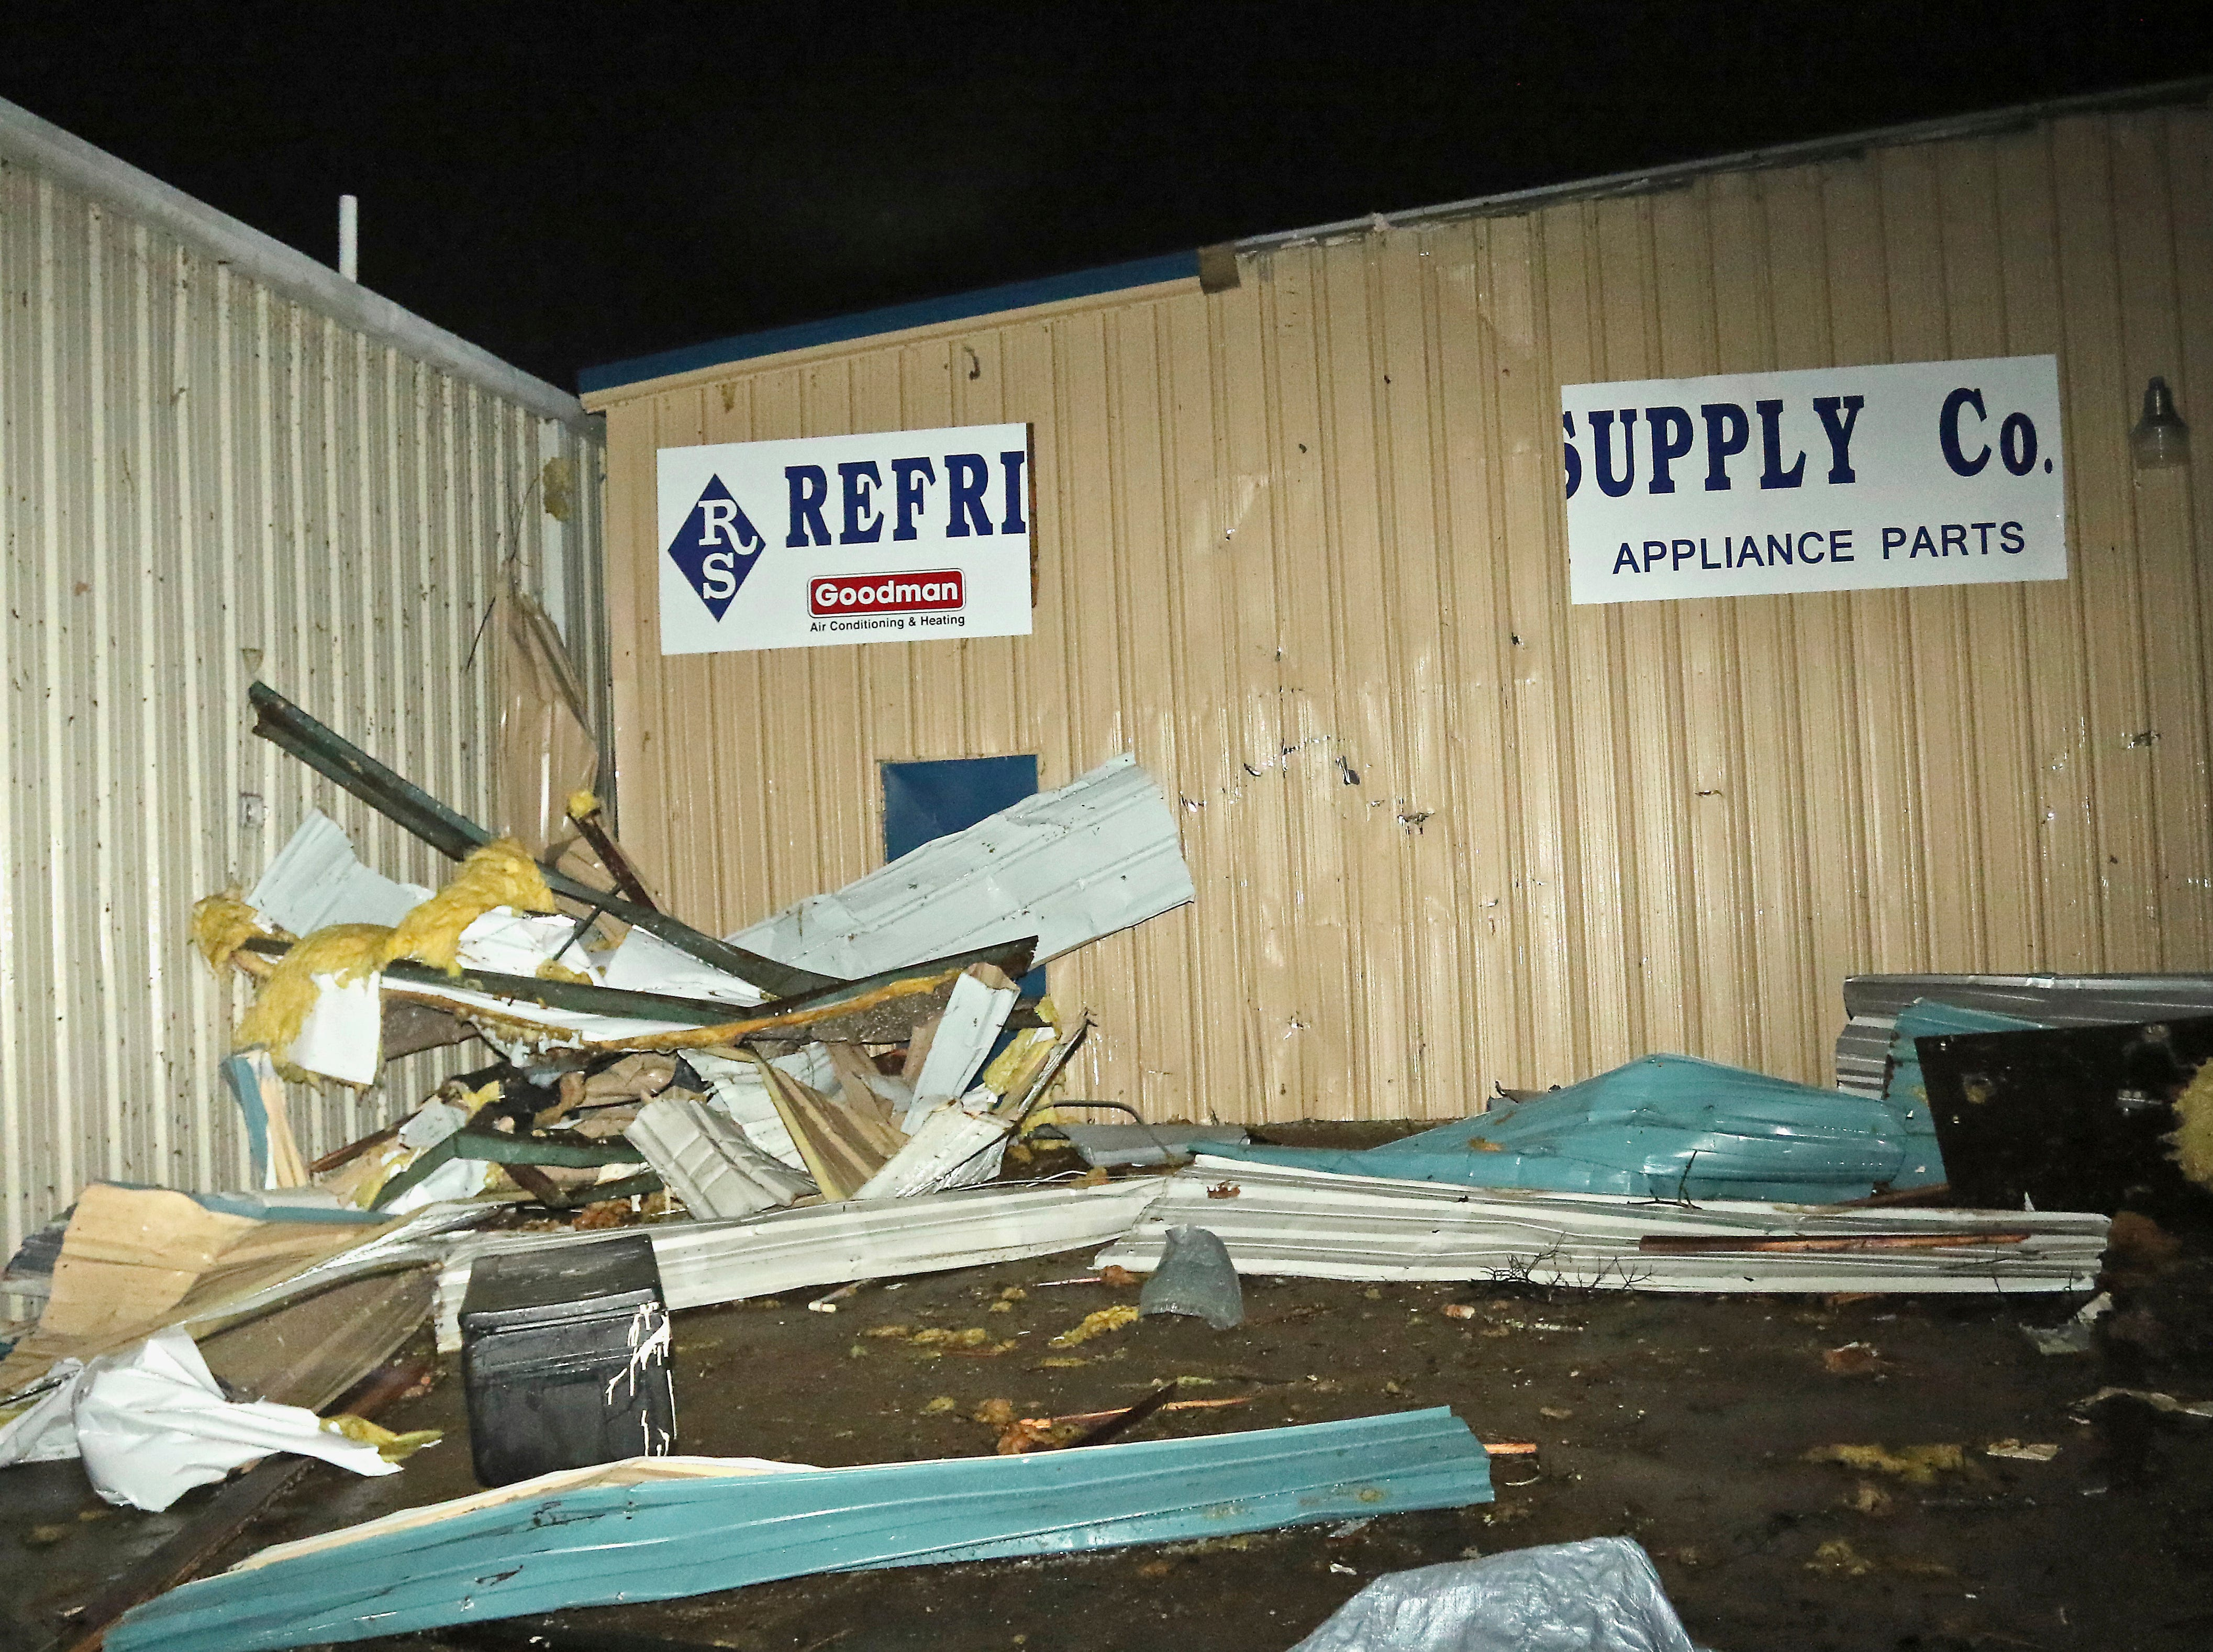 Tin from nearby businesses is piled up in front of Refrigeration Supply on Conway Drive in Columbus, Miss. after a tornado struck the area Saturday, Feb. 23, 2019. (AP Photo/Jim Lytle)